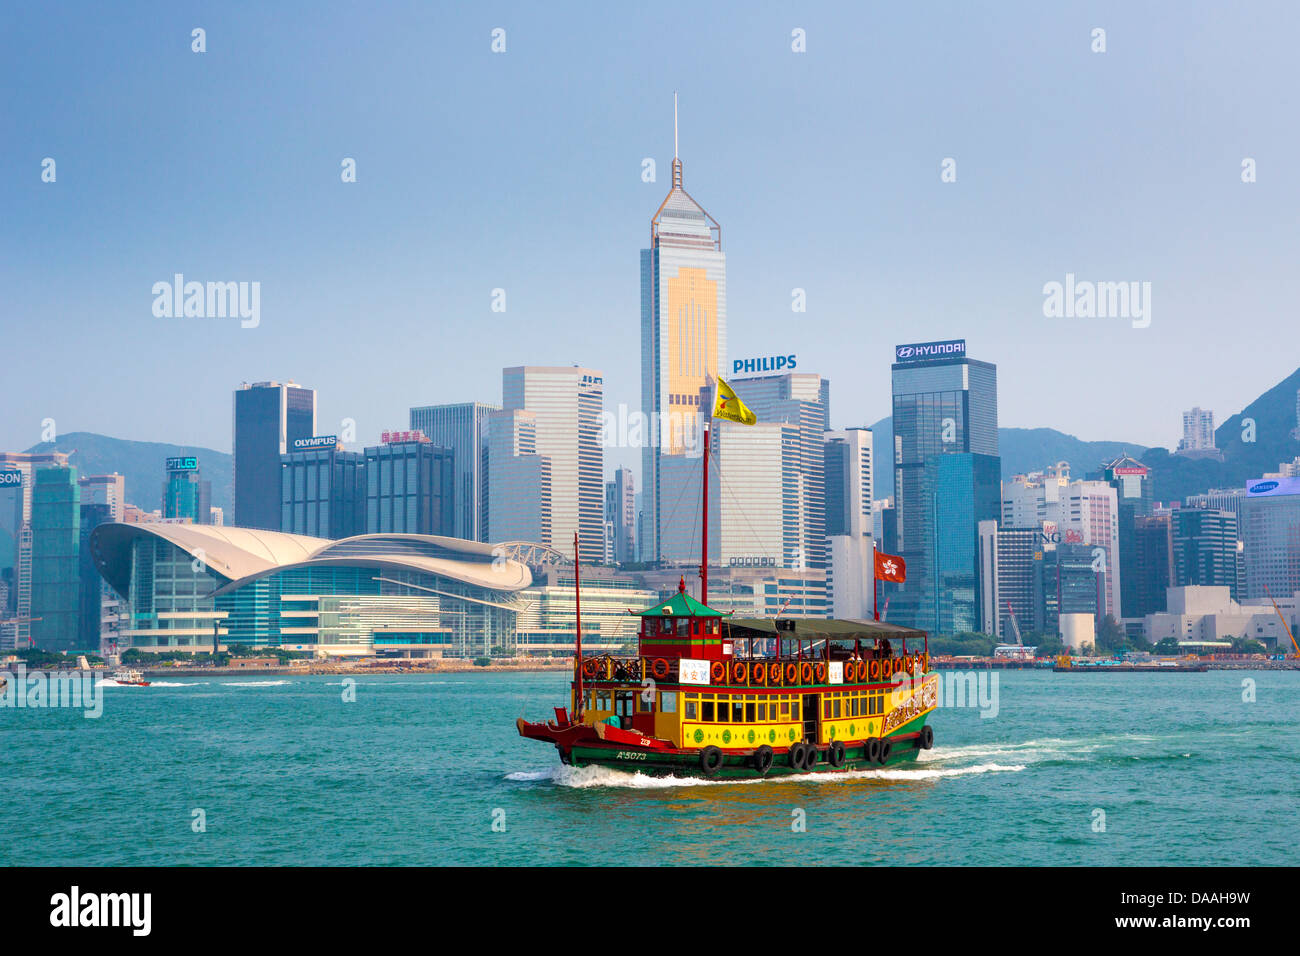 Hong Kong, China, Asia, City, Ferry, architecture, causeway, boat, skyline, skyscrapers, evening, twilight, wanchai, - Stock Image